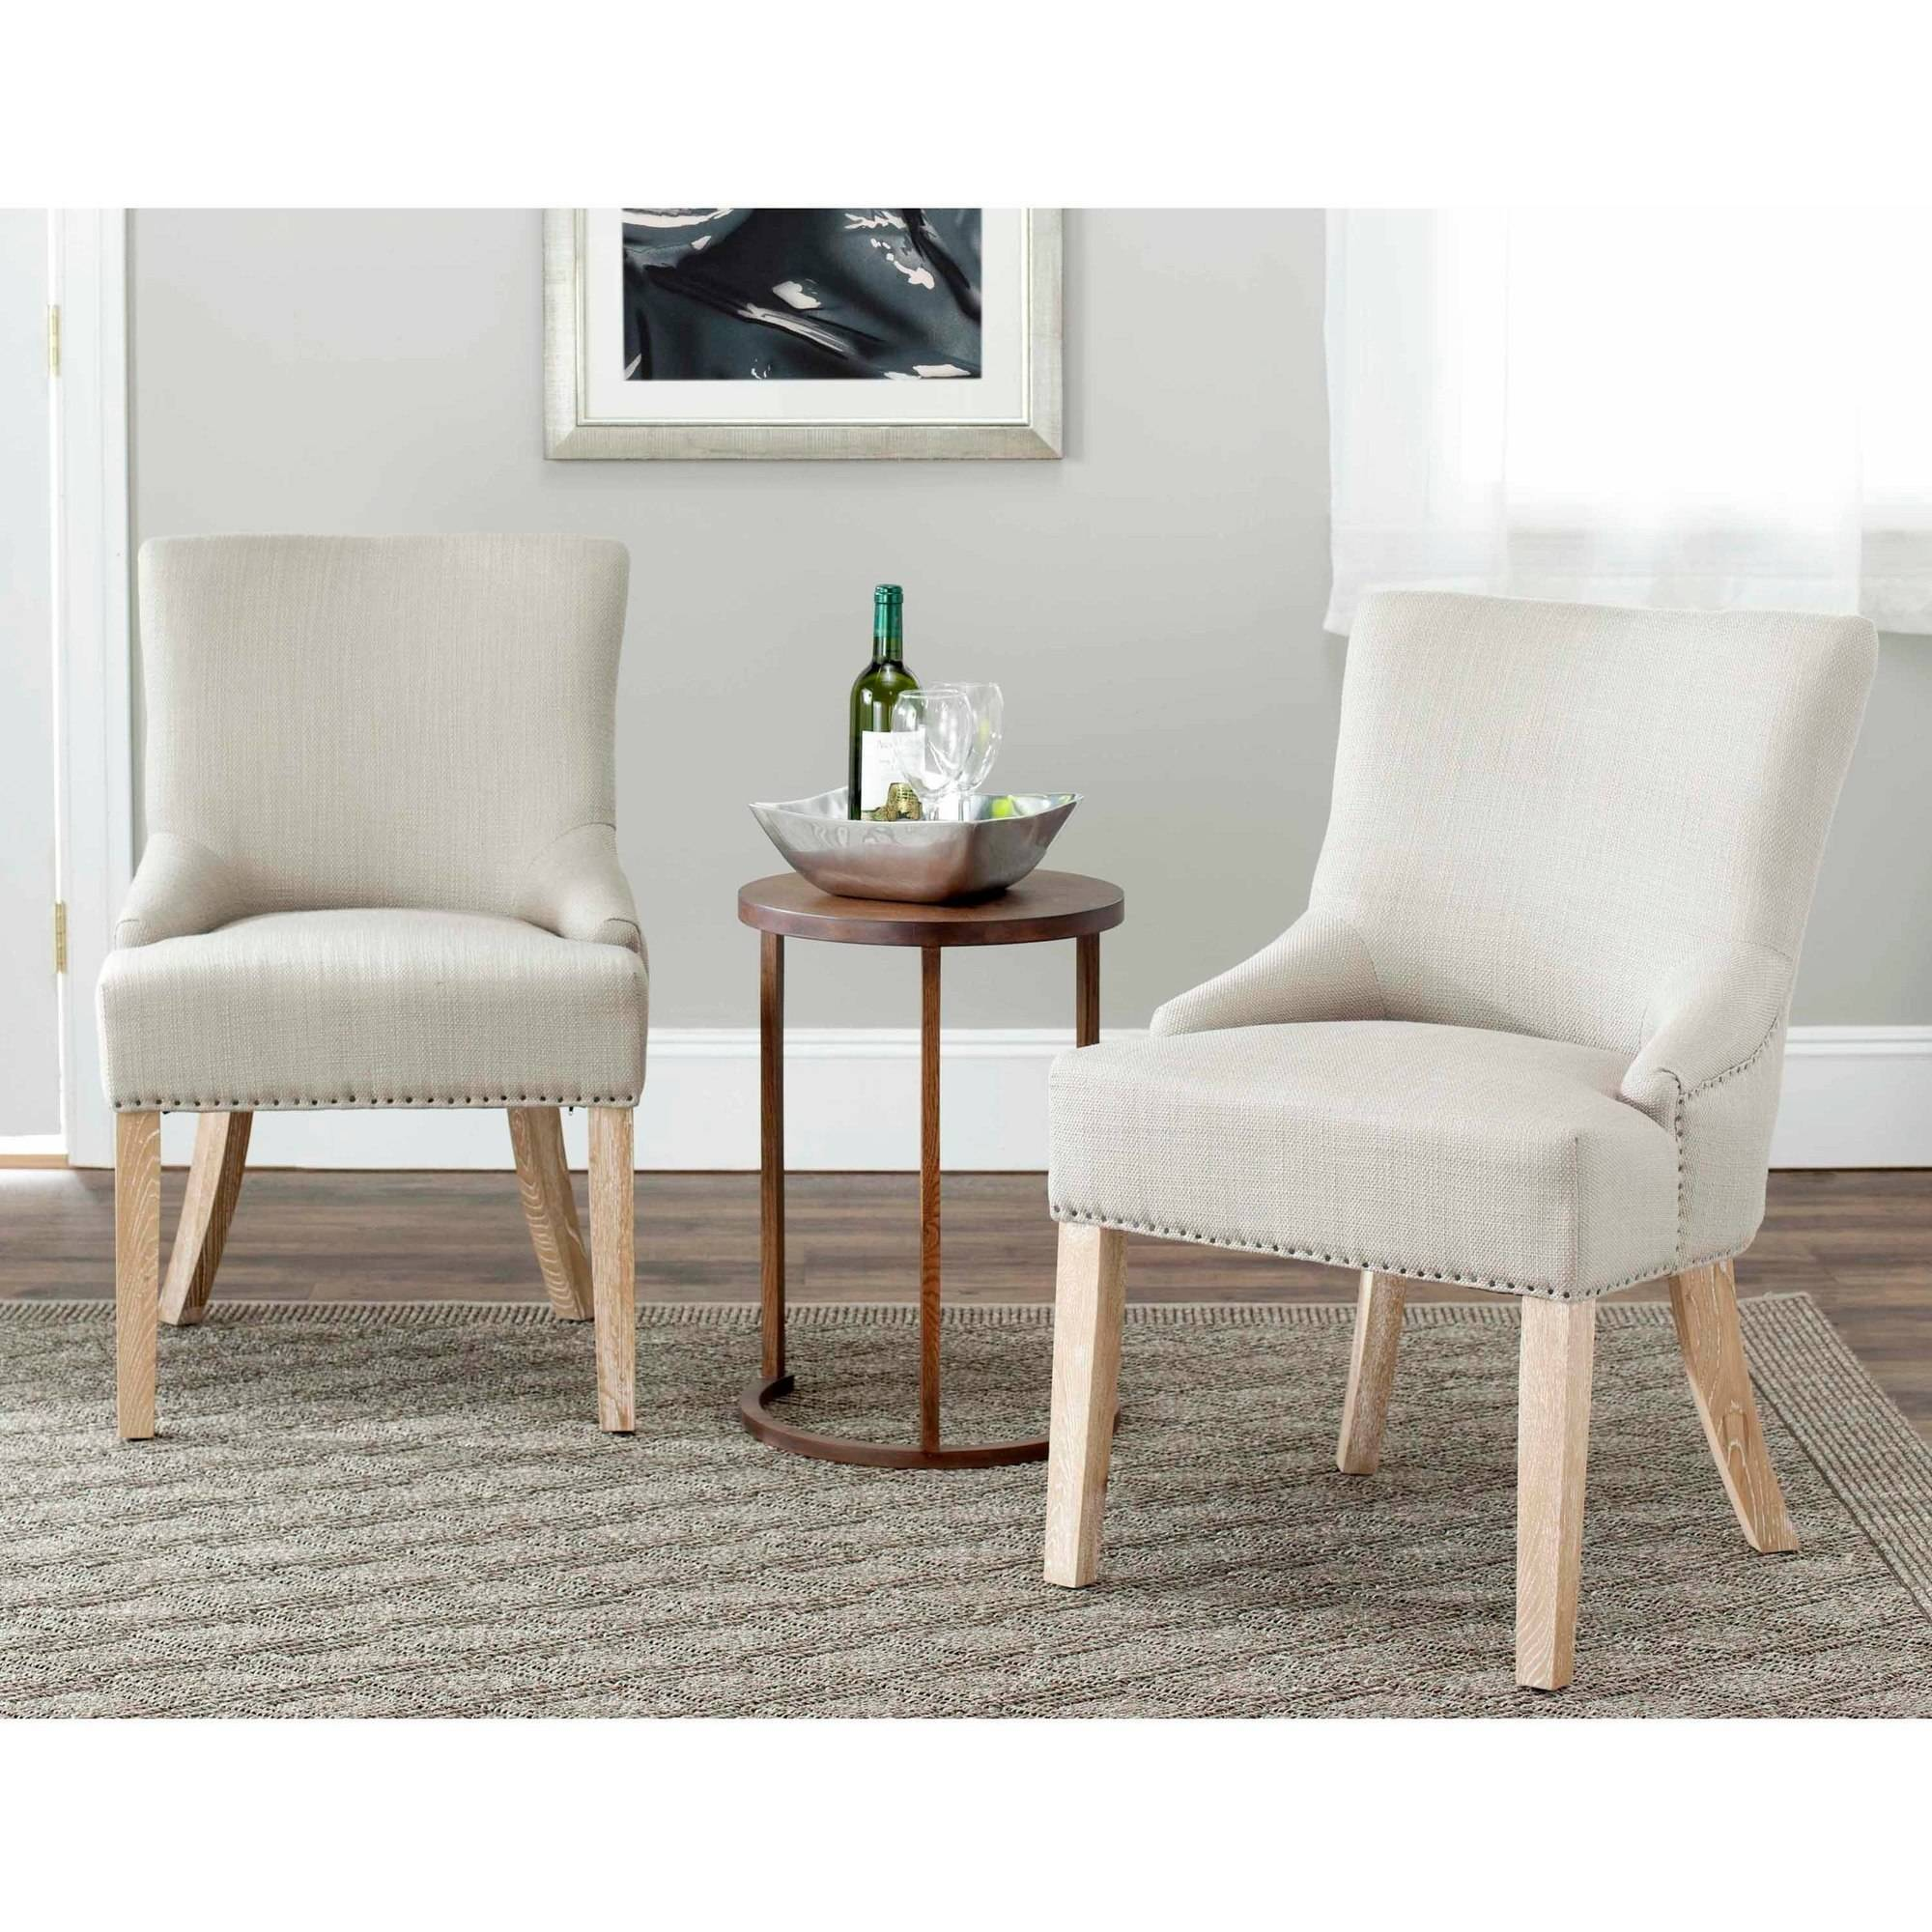 Safavieh Cotton-Poly Upholstered Lotus Side Chair, Set of 2, Biscuit Beige